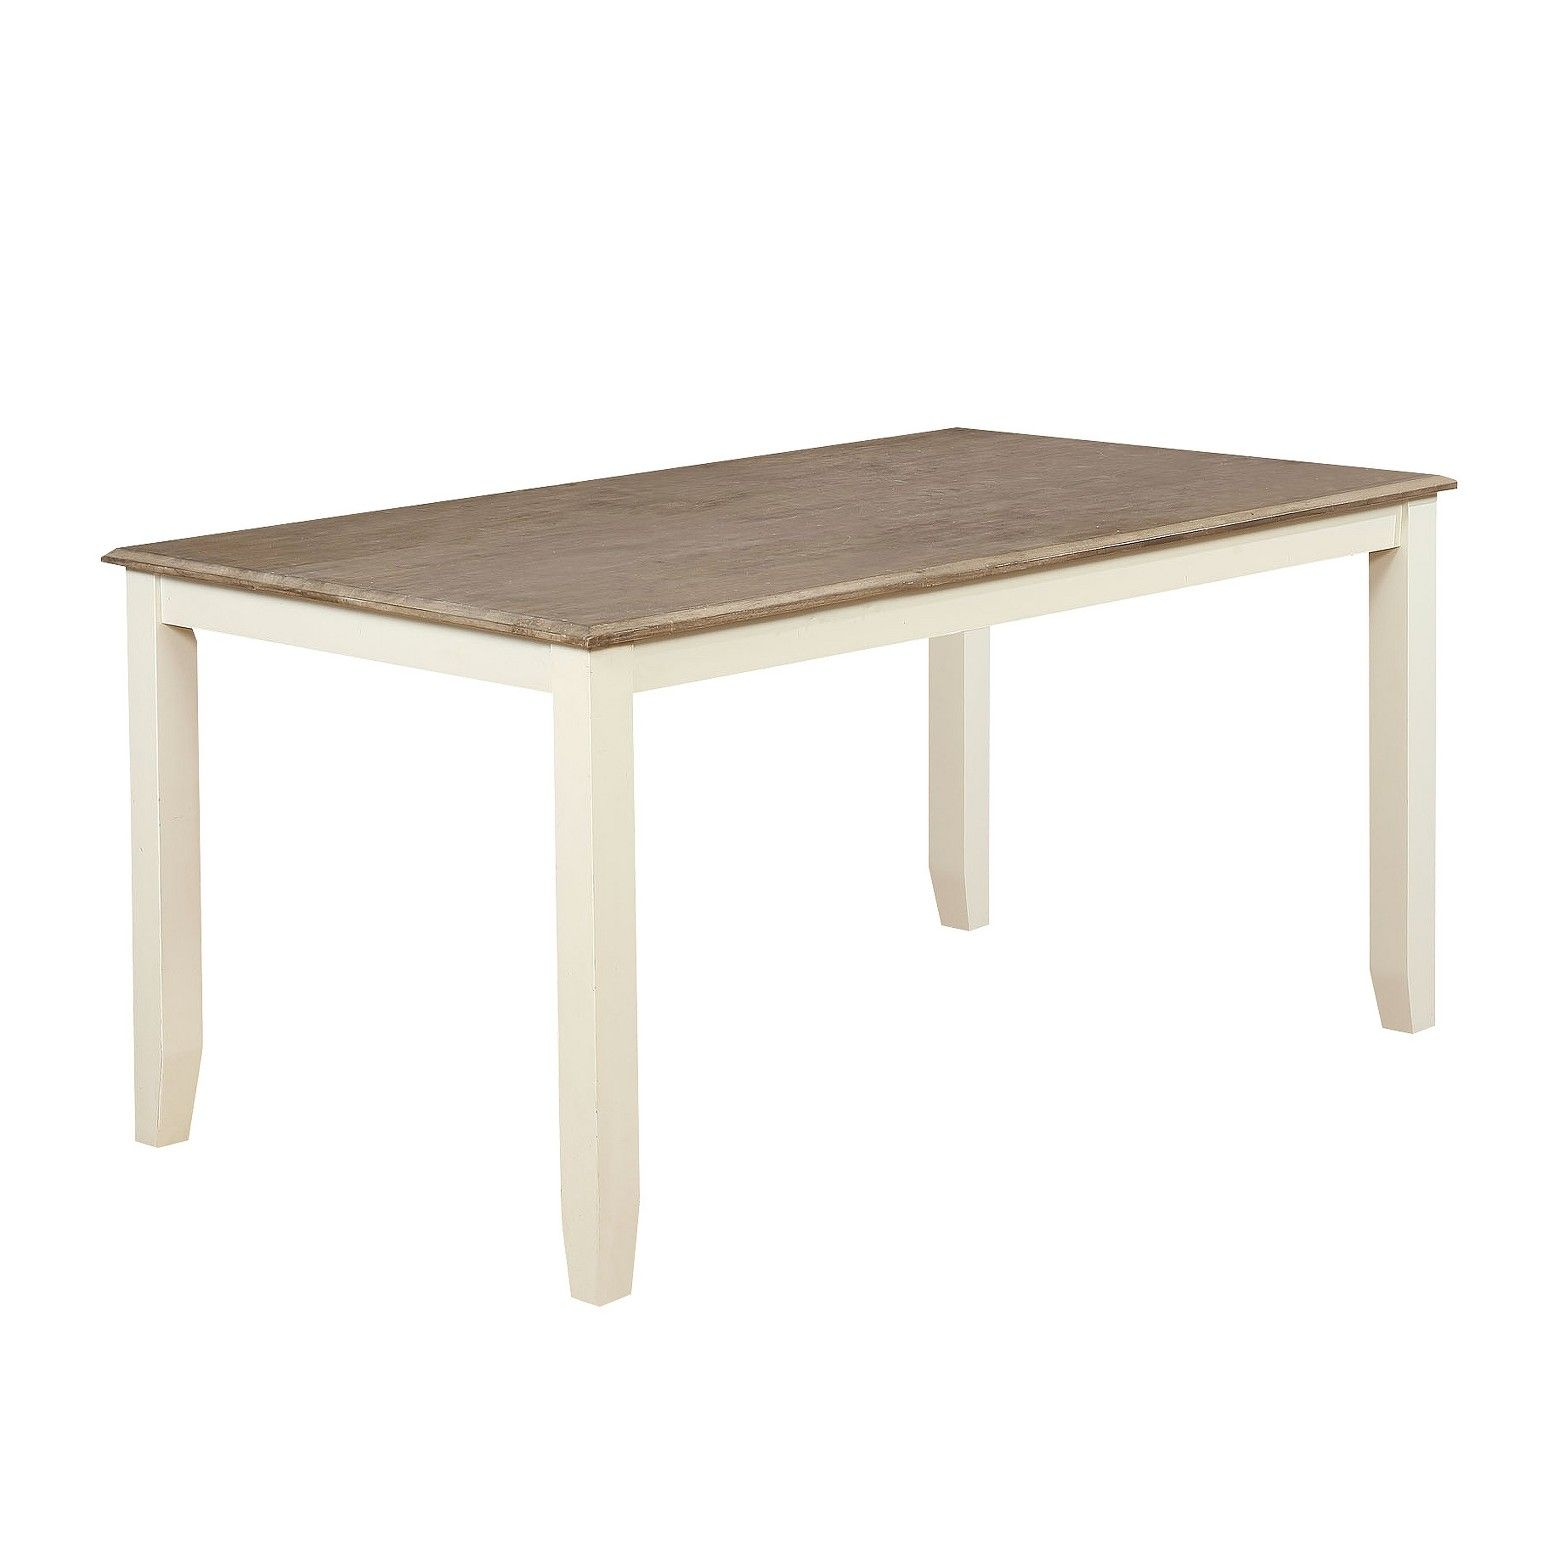 The Jane rectangular table is chic addtions A beautiful painted